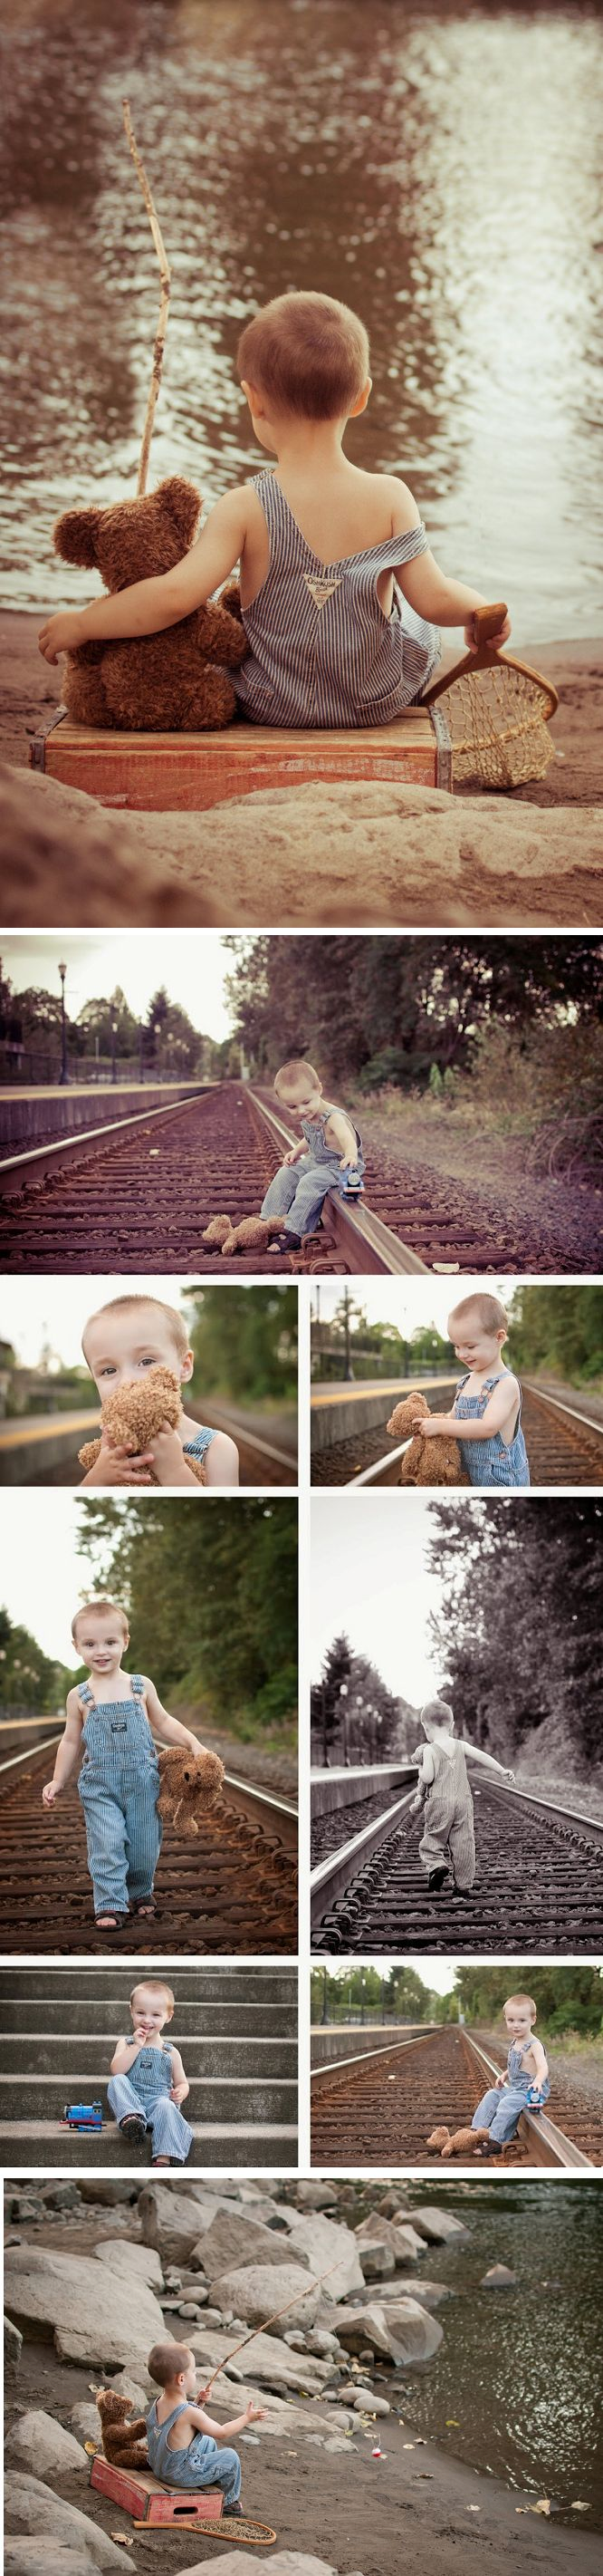 Two Years Old~ Oregon City Portrait Photographer / On Location /  © Robinwood Photography